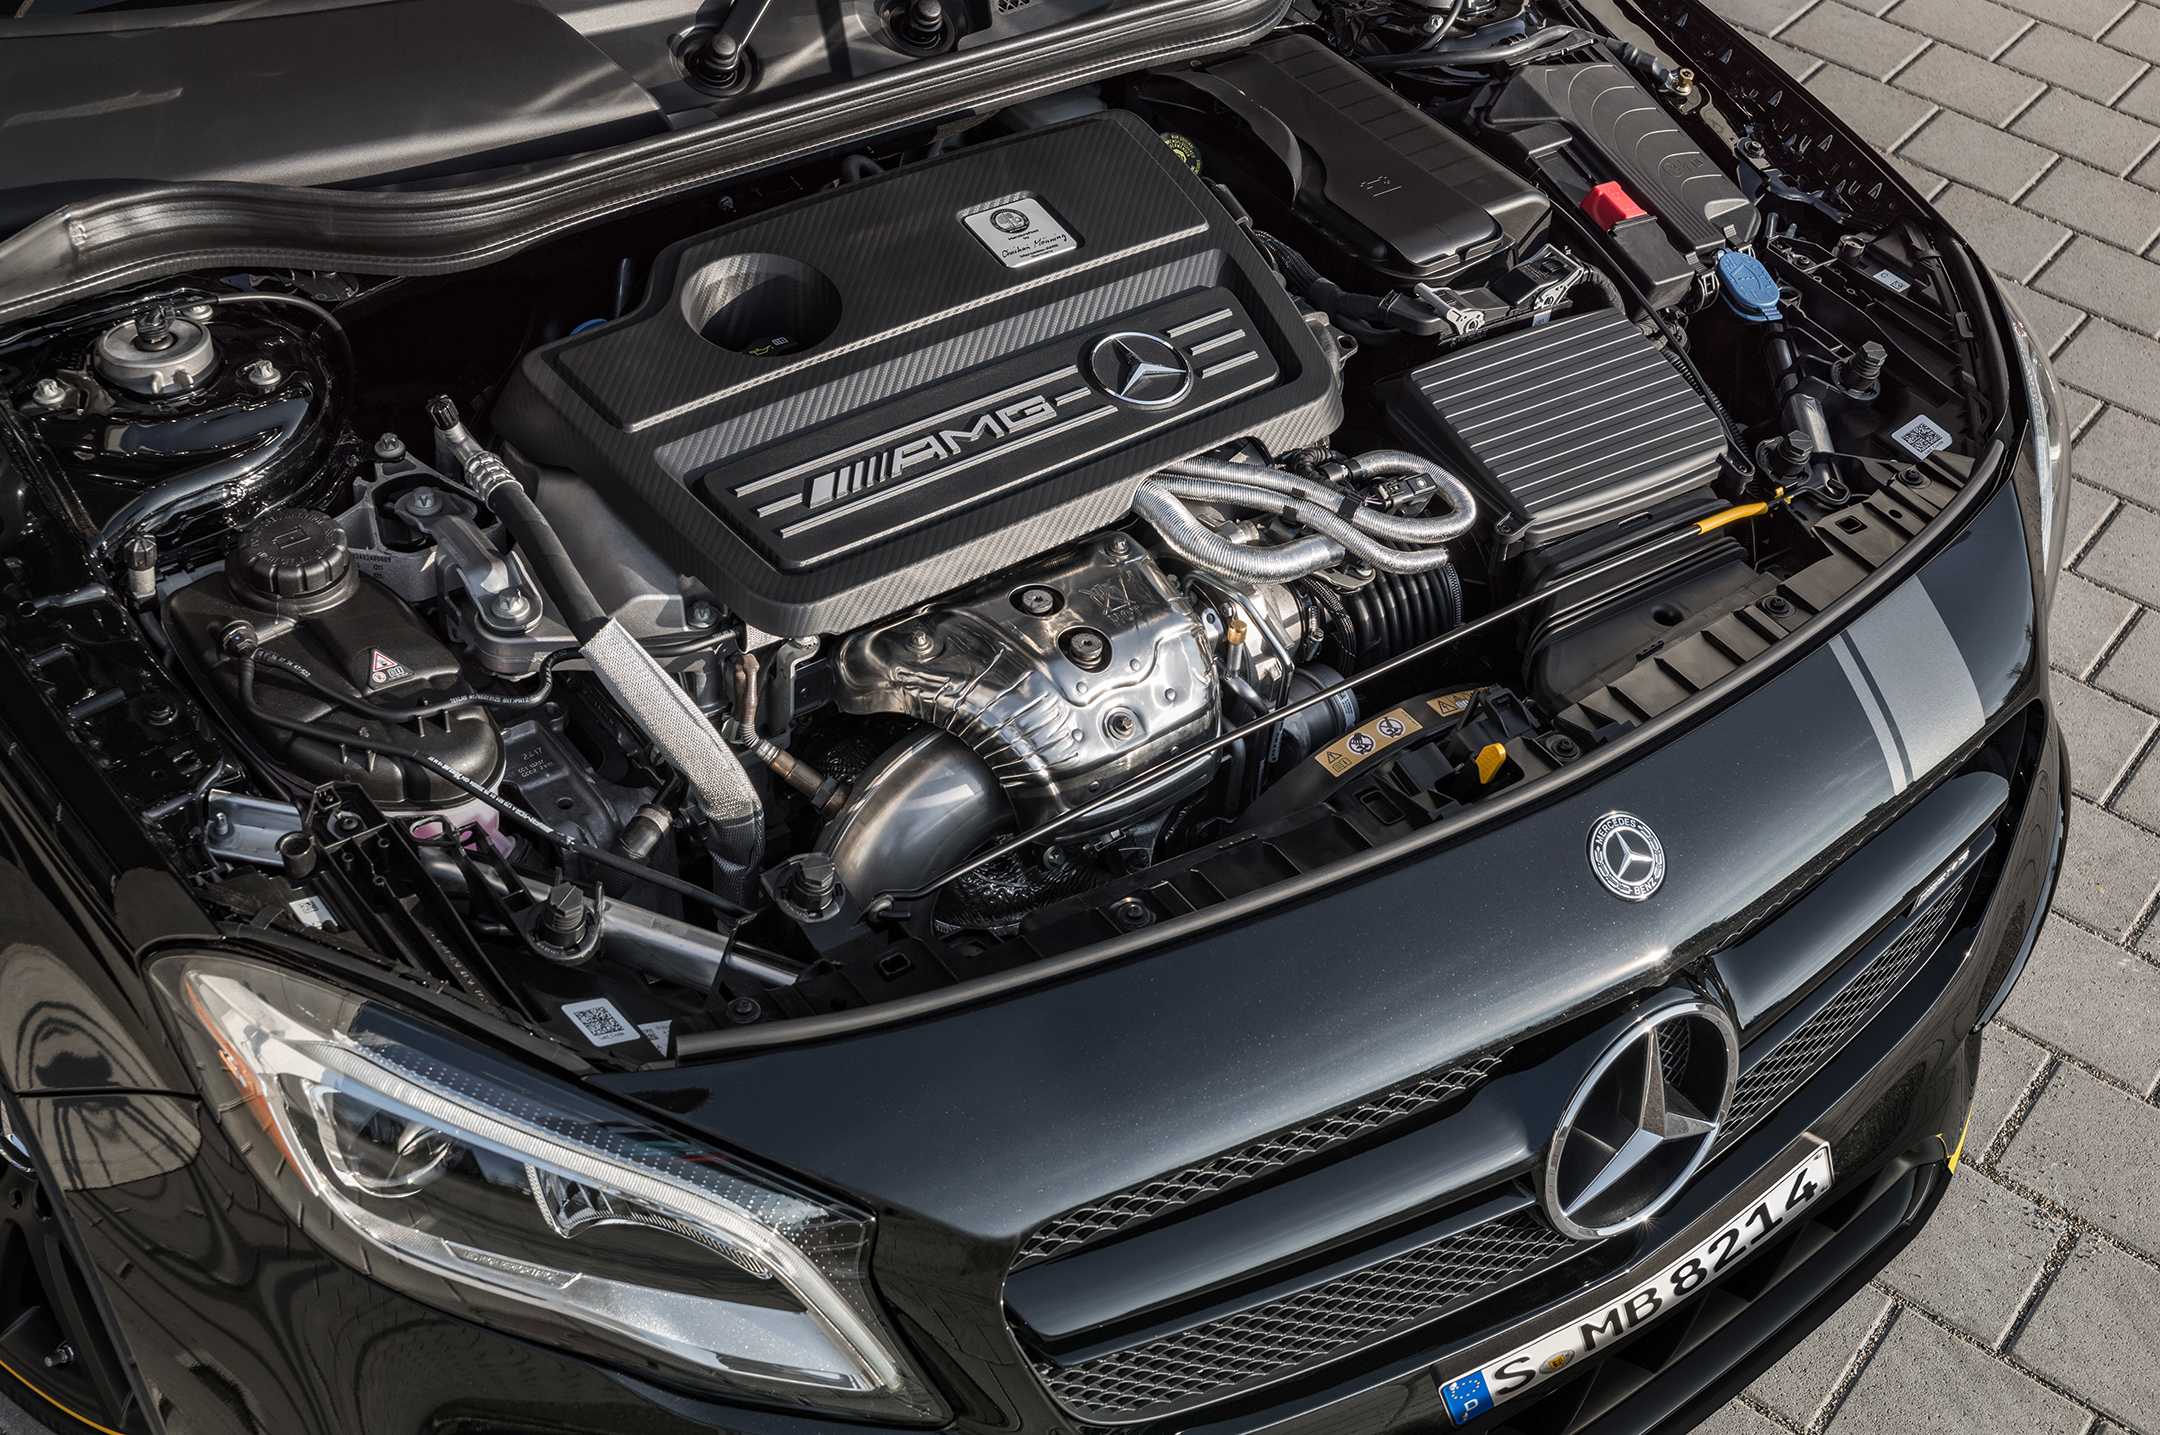 Mercedes-AMG GLA 45 - 2017 - under the hood / engine - moteur